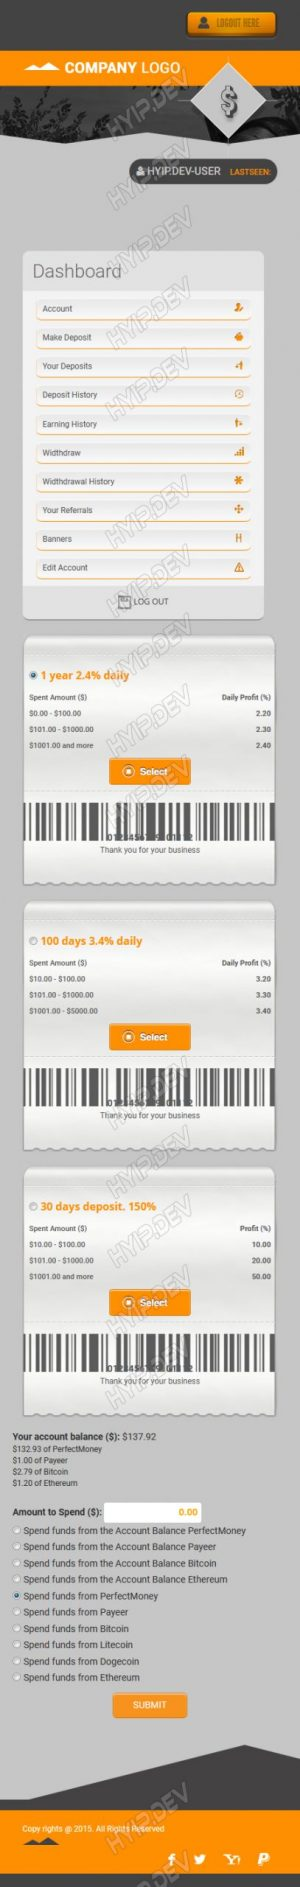 goldcoders hyip template no. 108, mobile page screenshot